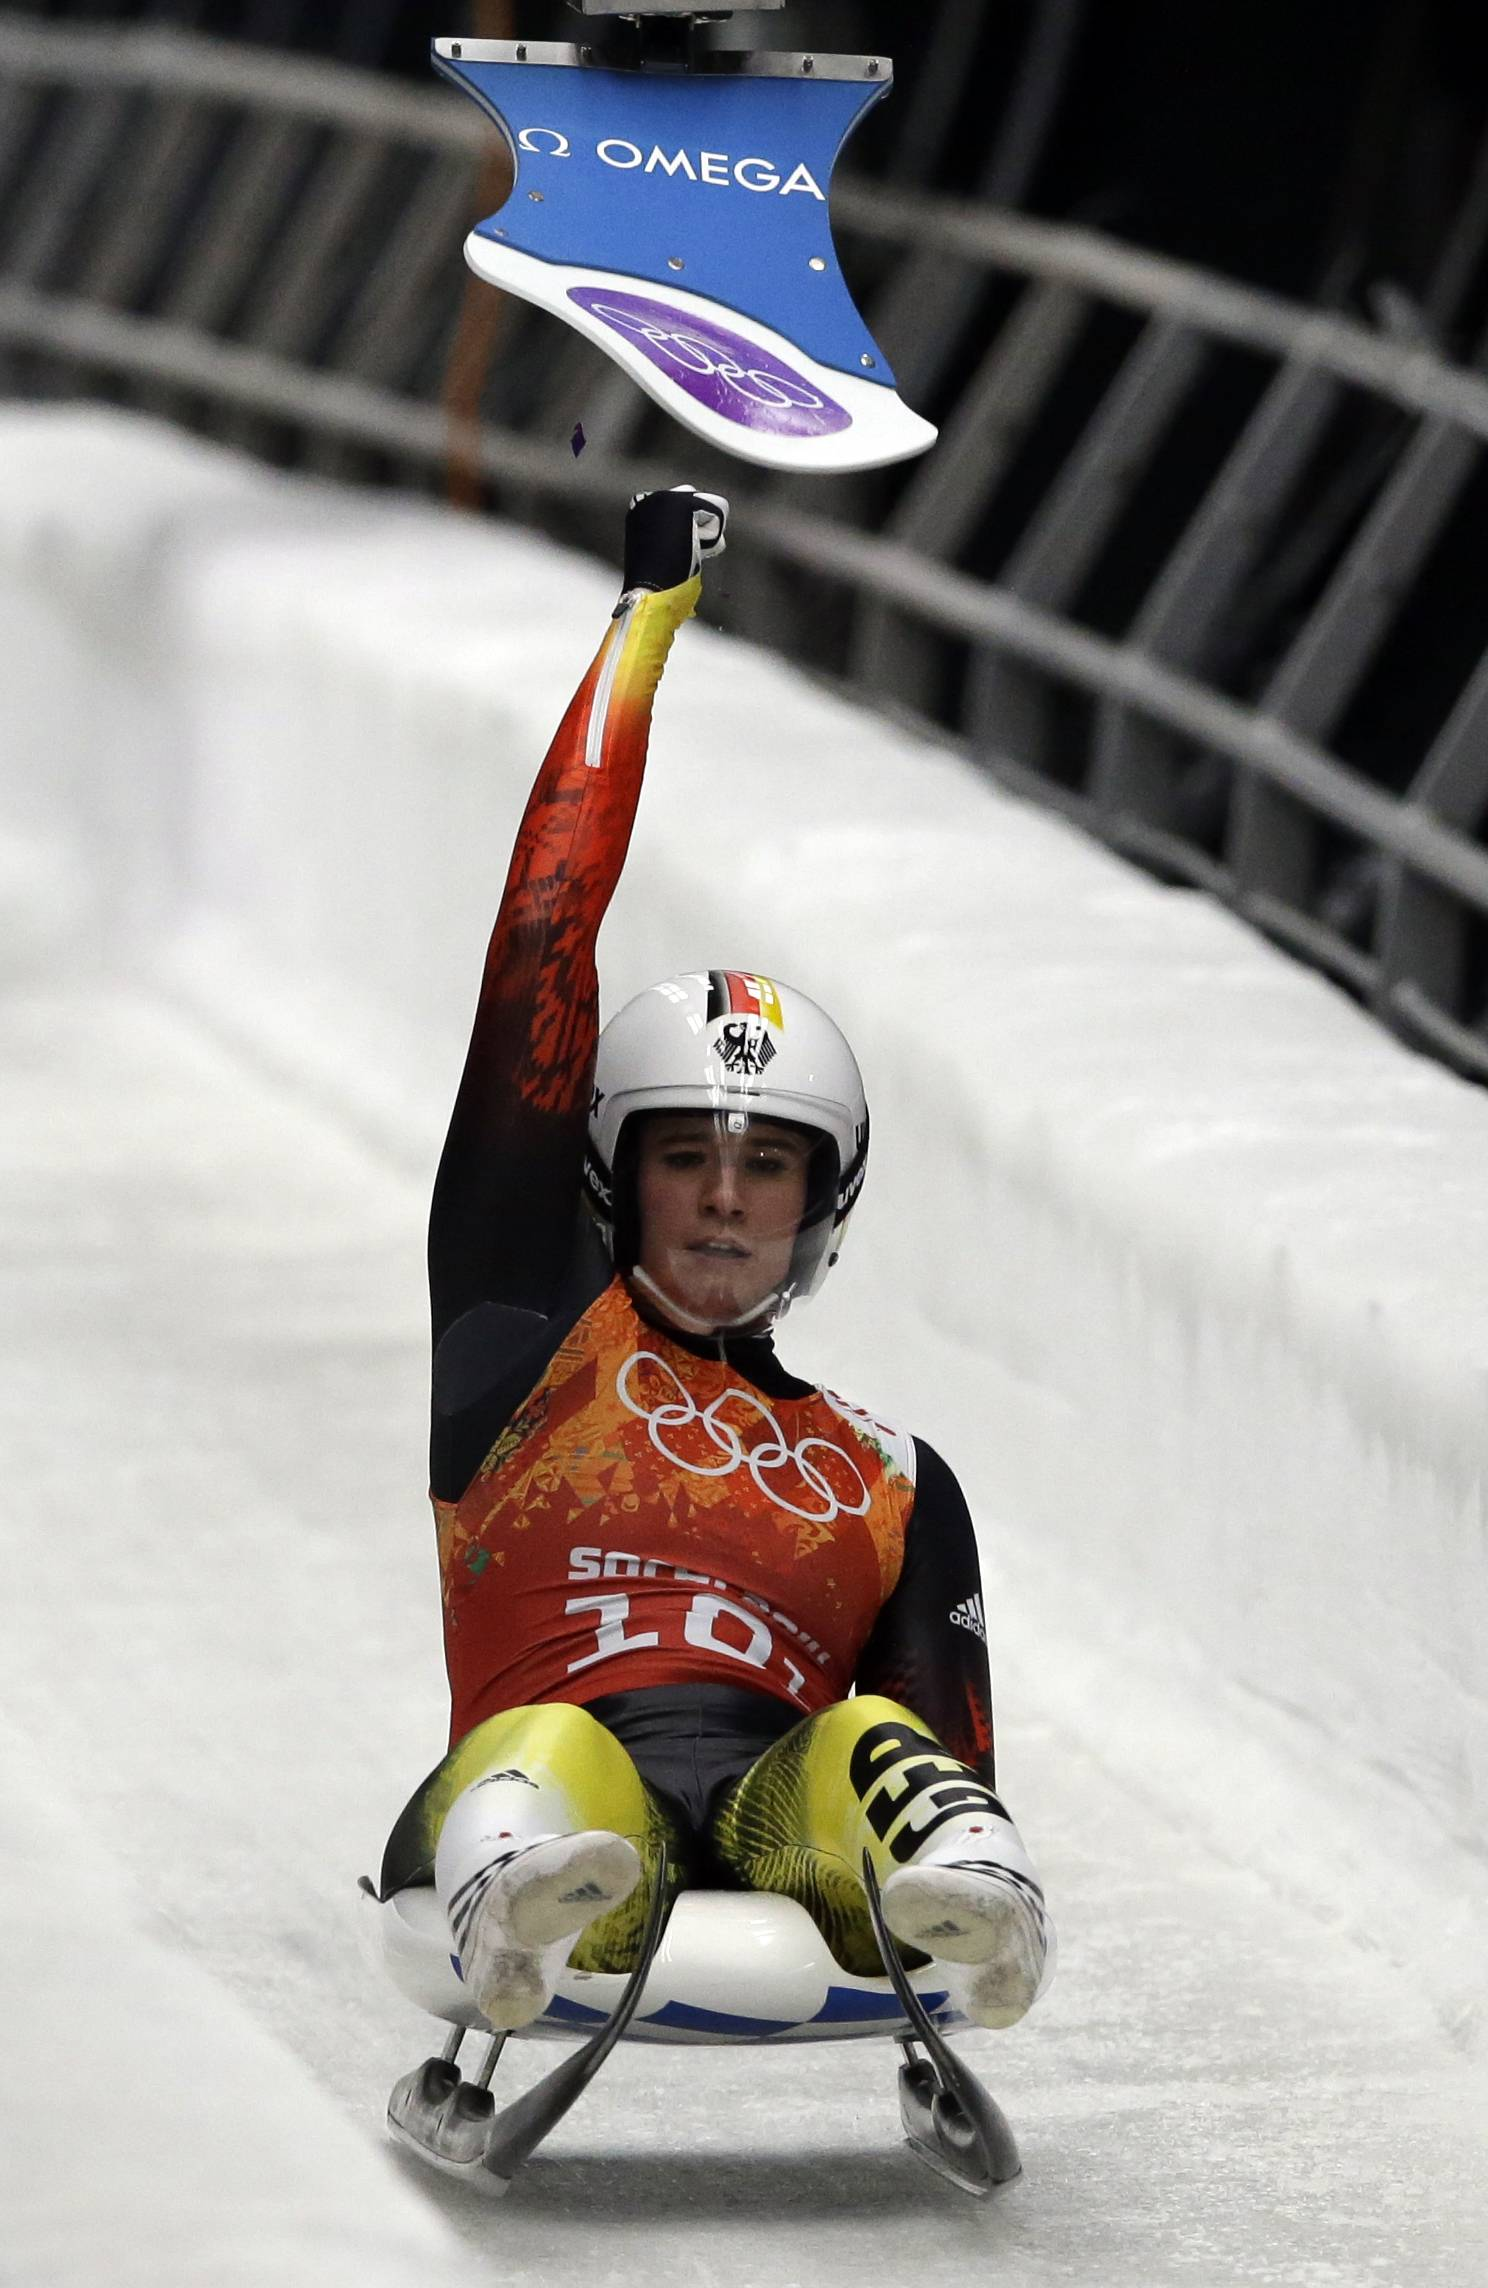 Germany's Natalie Geisenberger hits the relay pad so teammate Felix Loch can start his run during the luge team relay competition. The German team won the gold medal. (AP Photo/Dita Alangkara)